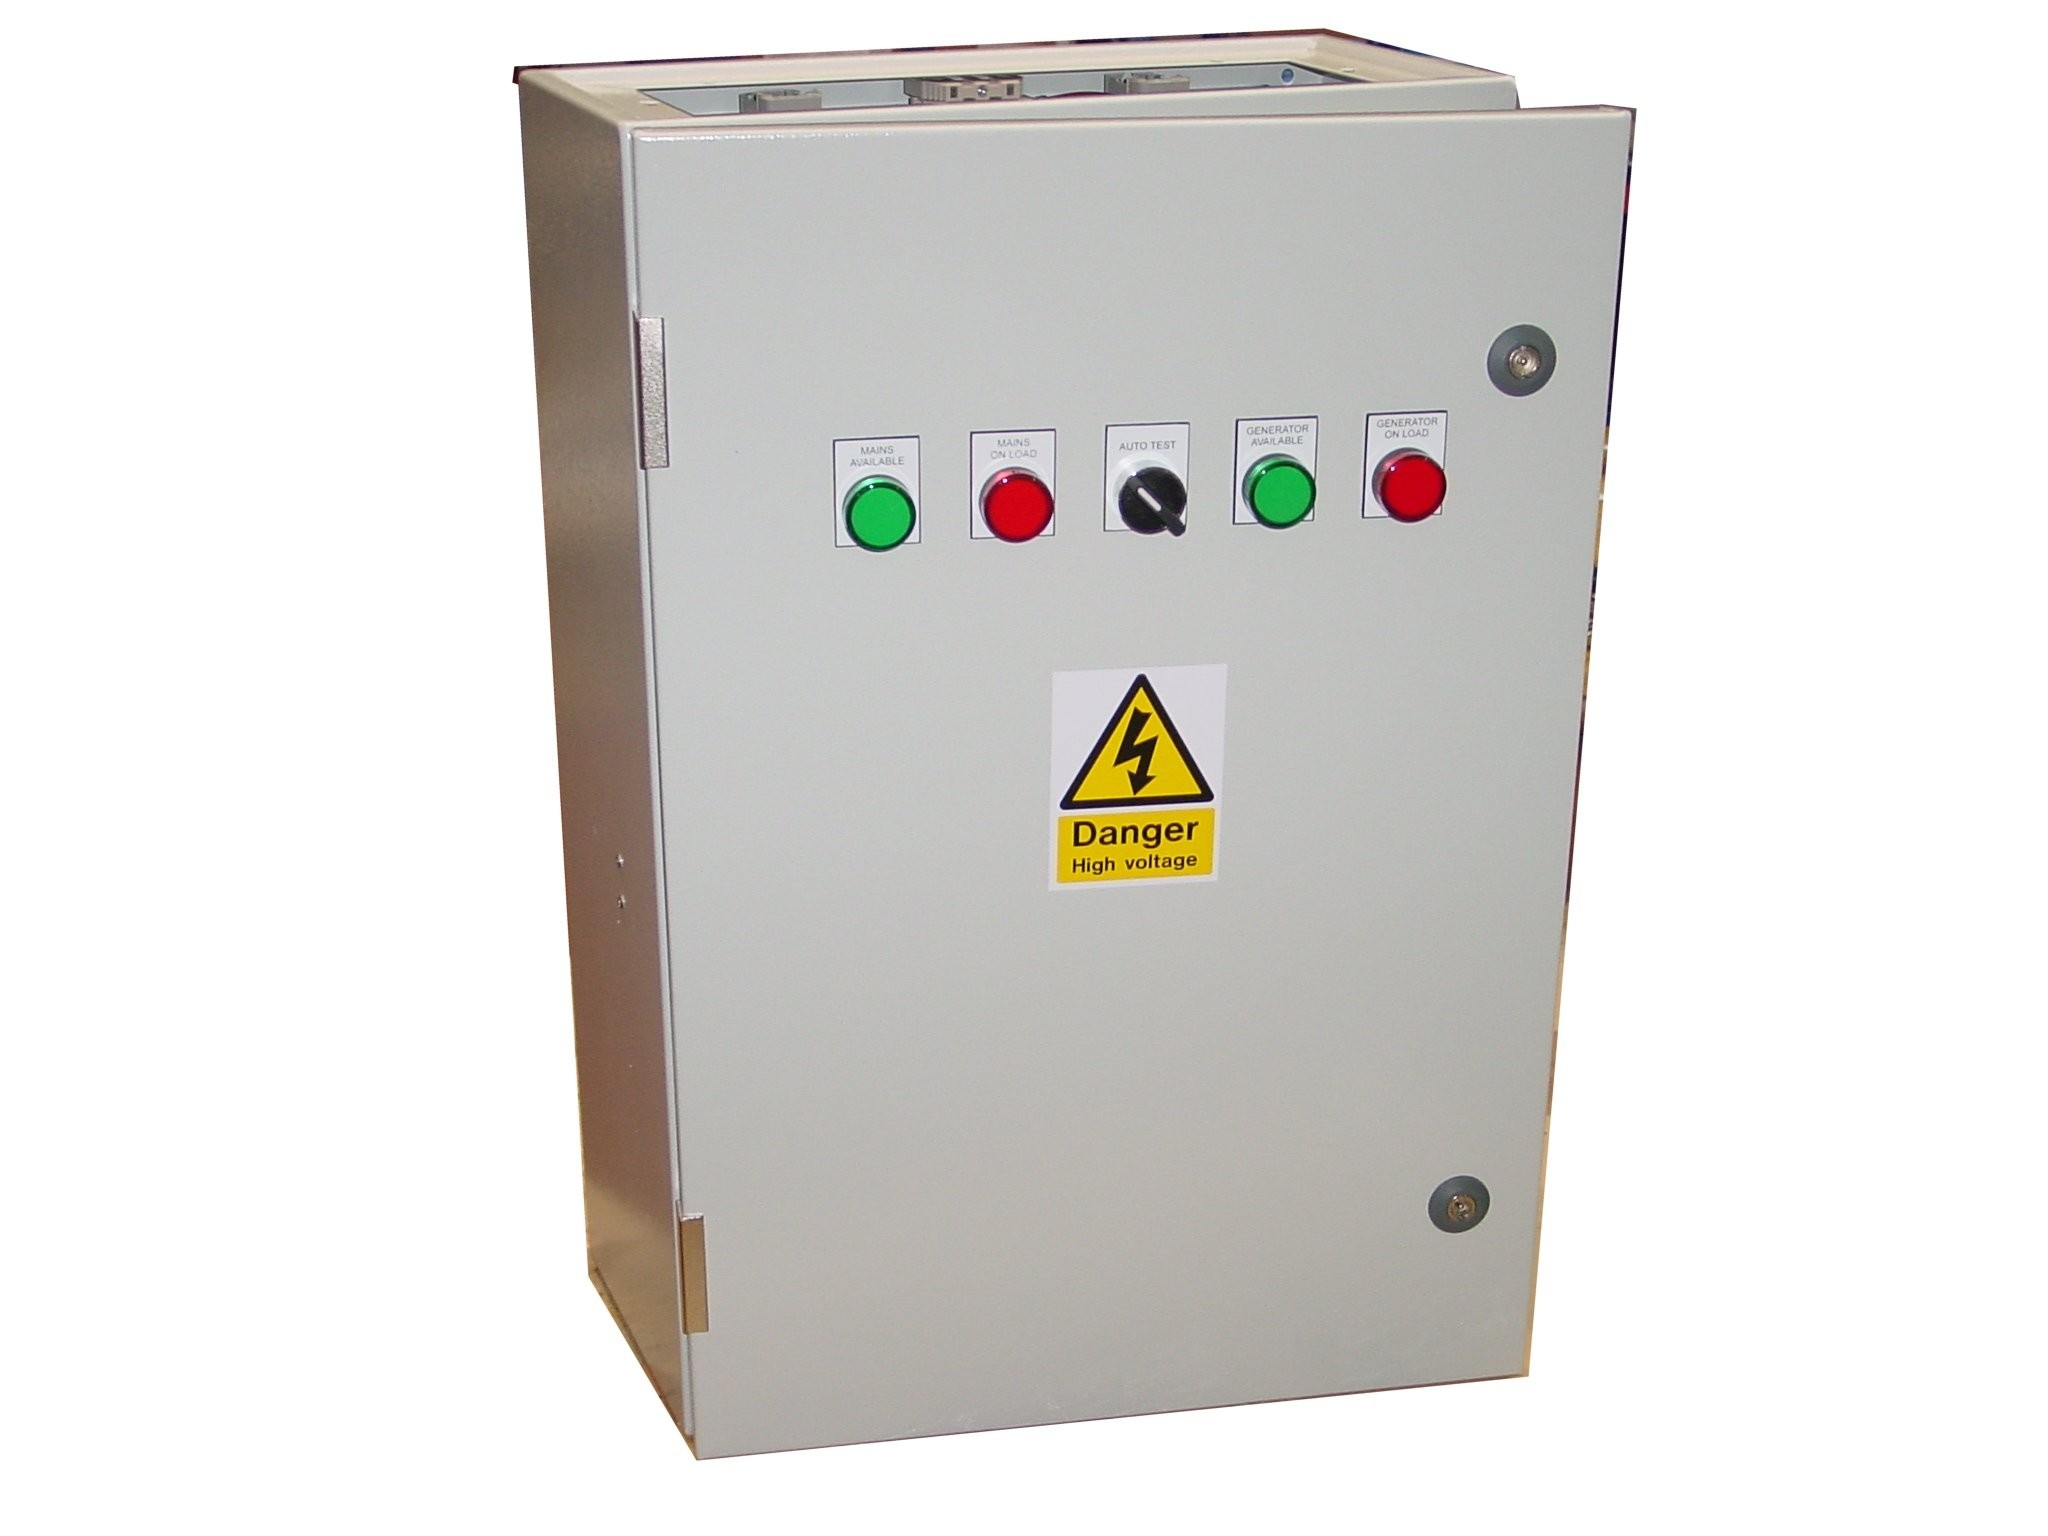 200A ATS Single Phase 230V, UVR Controlled, ABB Contactors